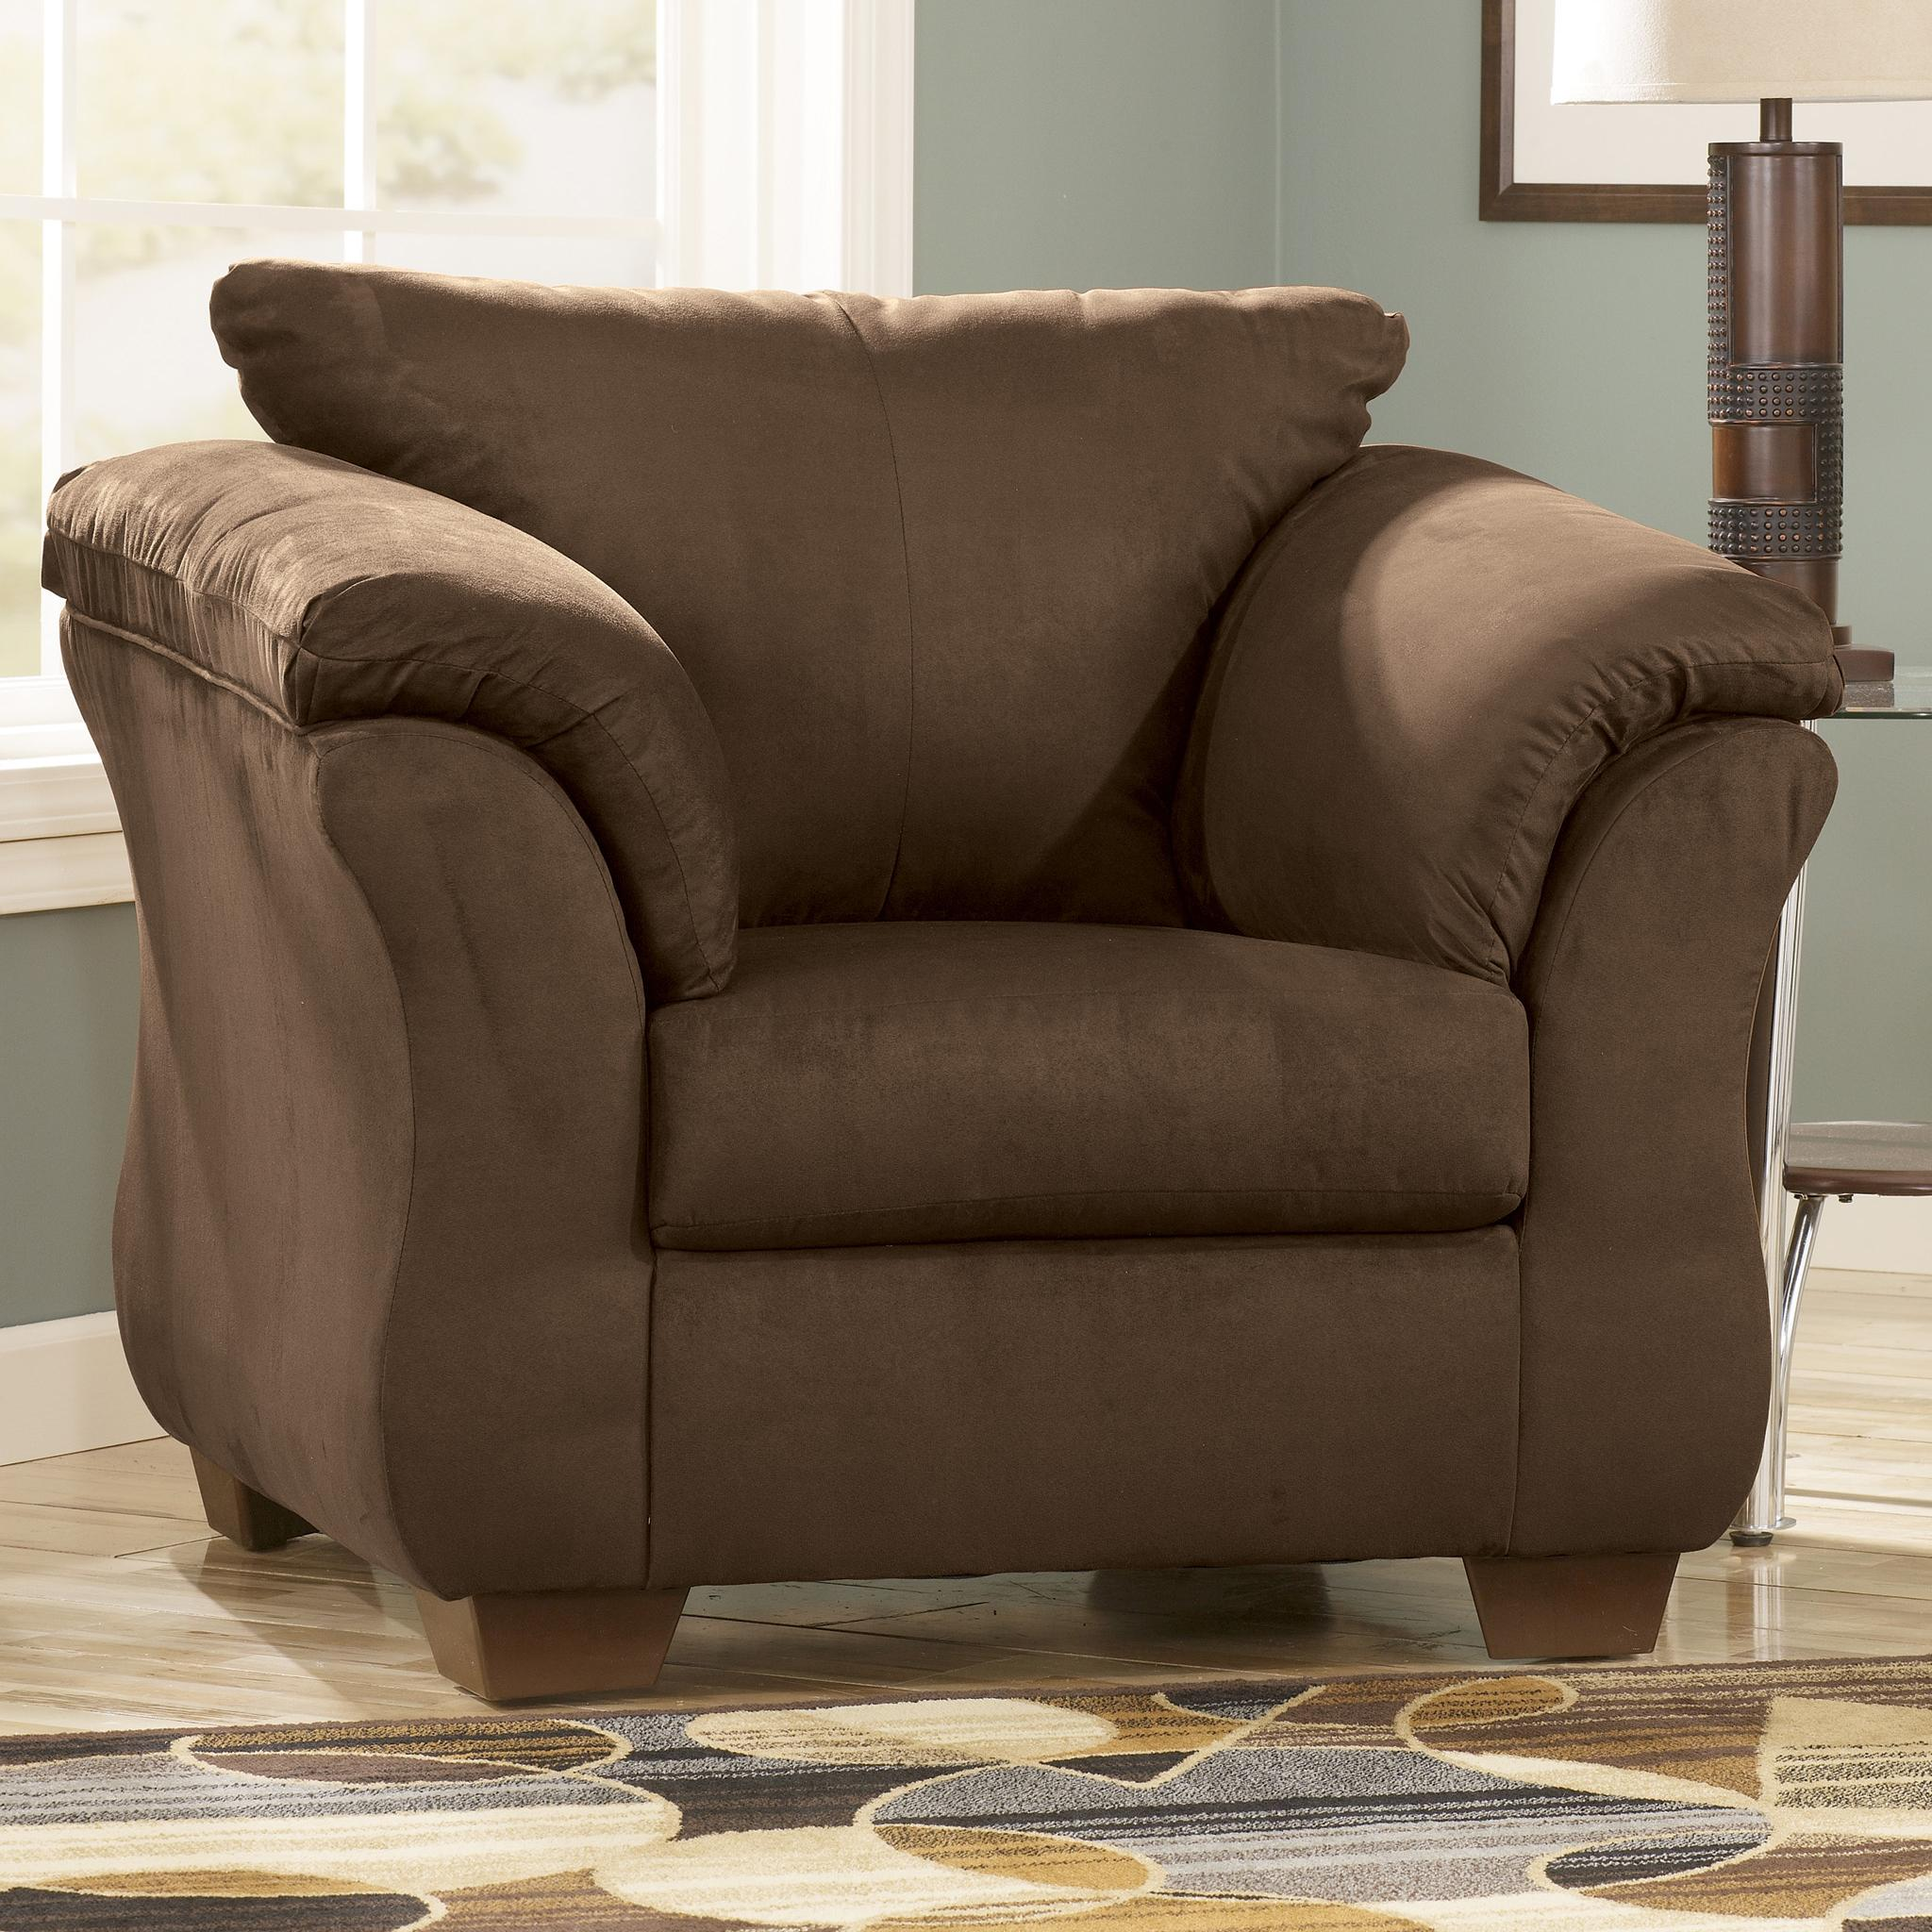 Darcy - Cafe Upholstered Chair by Ashley (Signature Design) at Johnny Janosik